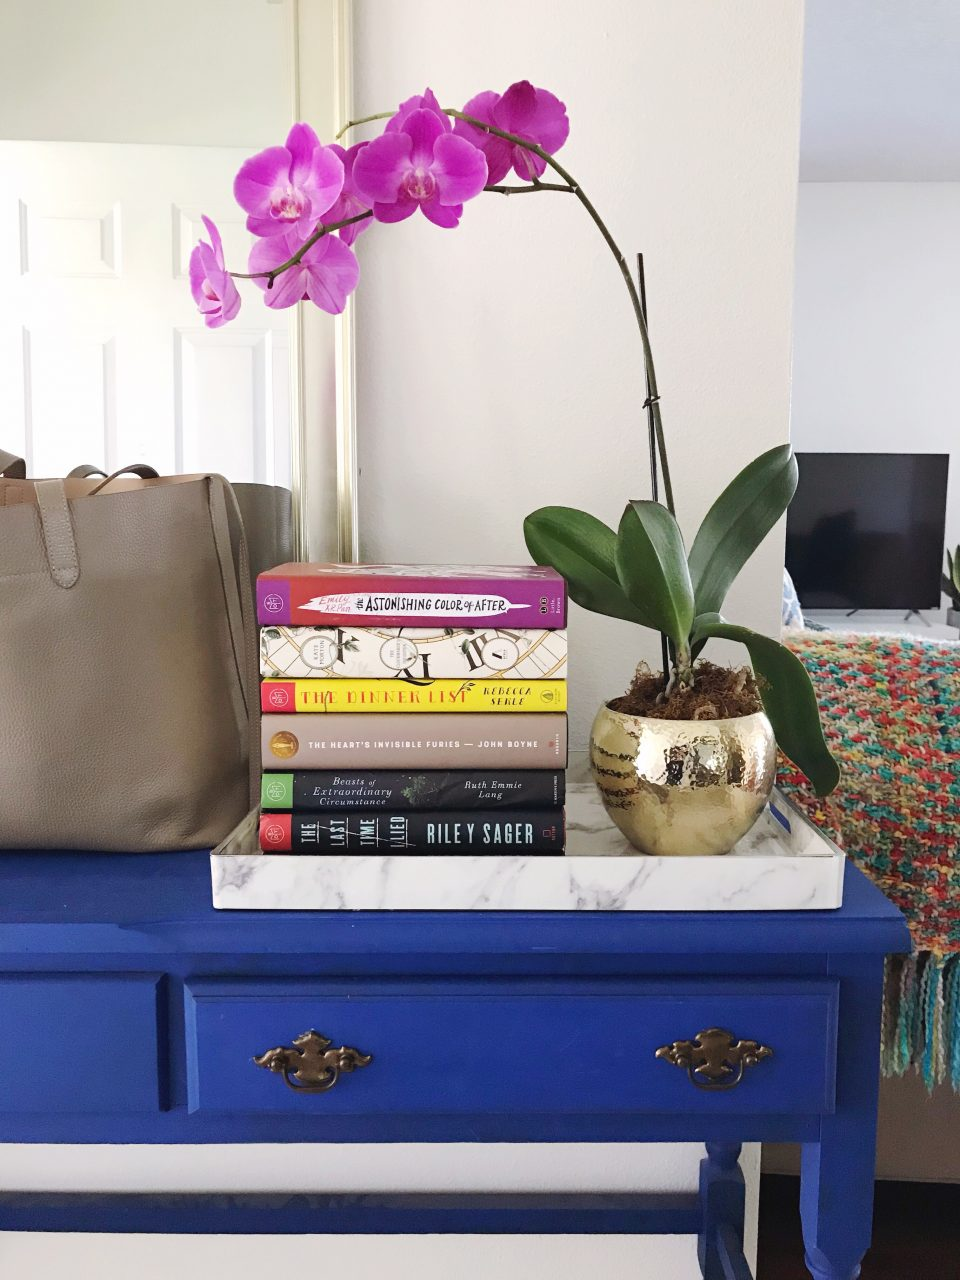 Stack of unread Book of the Month books on a blue console table, between a purple potted orchid plant and a taupe leather Cuyana structured tote bag.